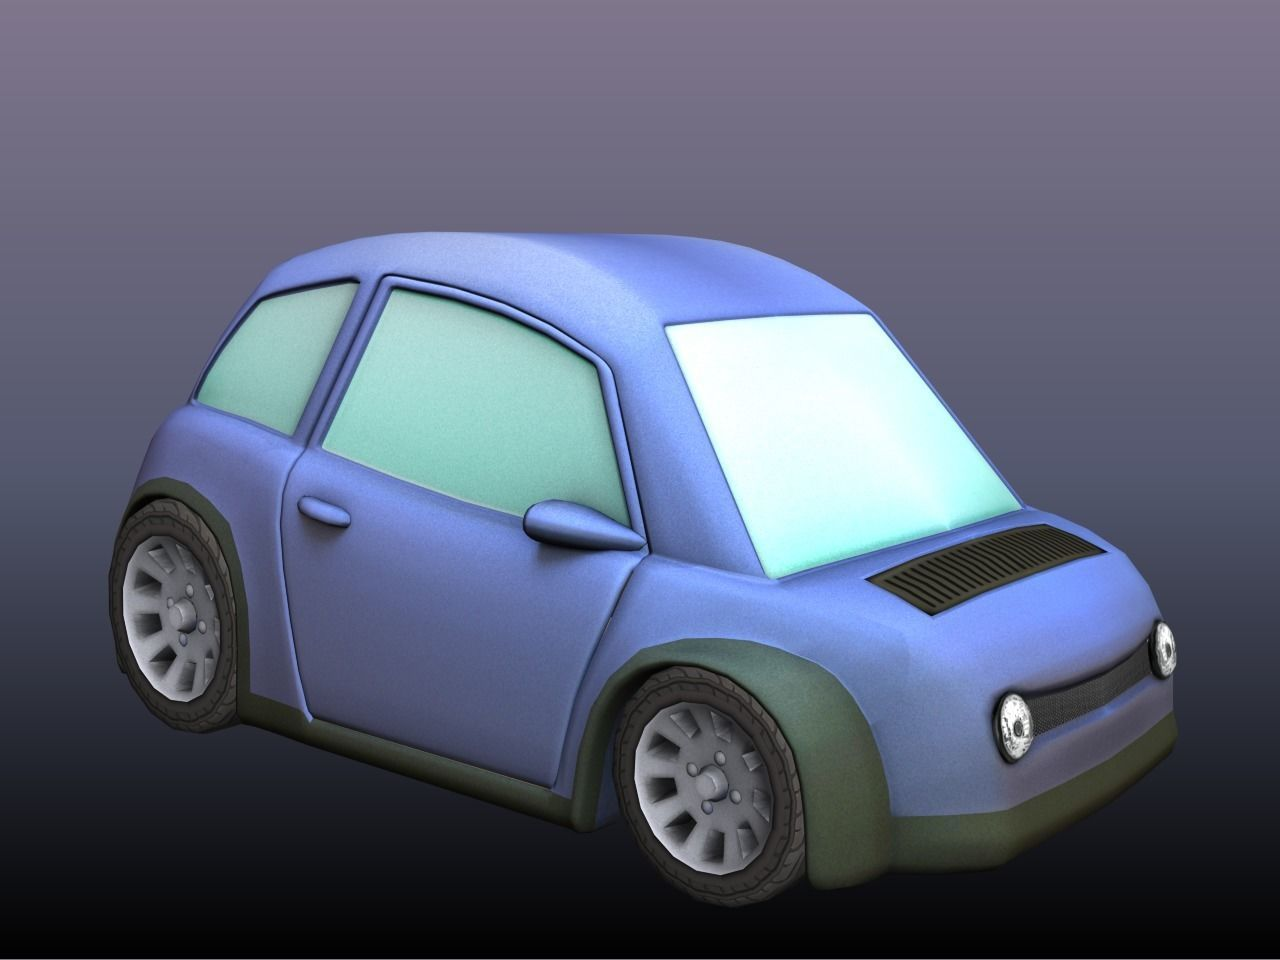 3d Model Cartoon Car Cartoon Cgtrader